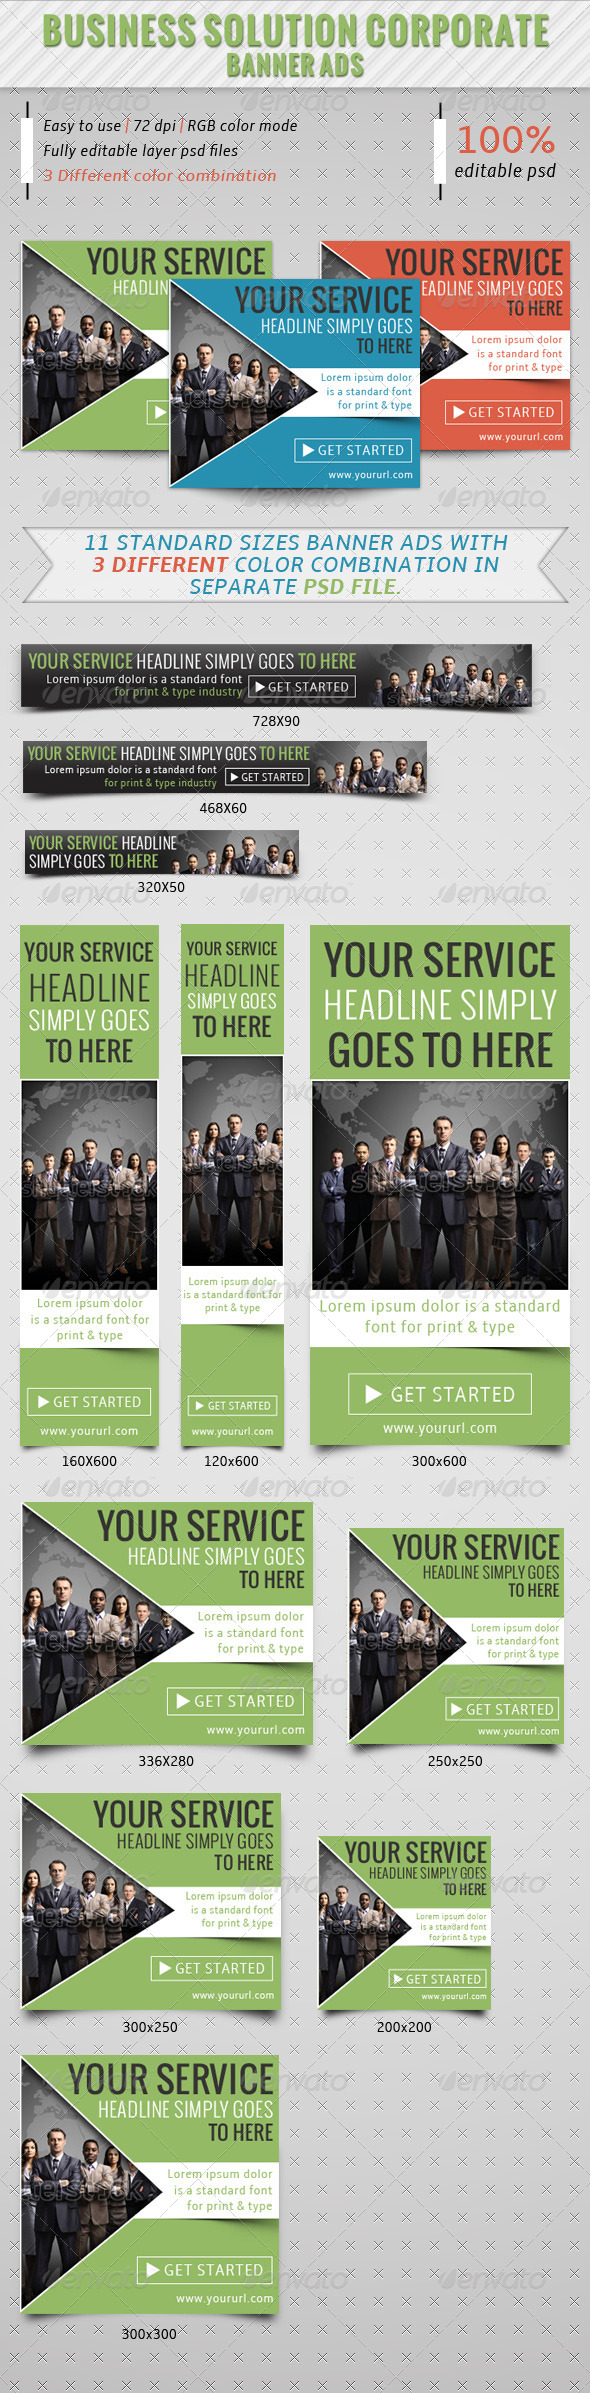 GraphicRiver Business Solution Corporate Banner Ads 7240123